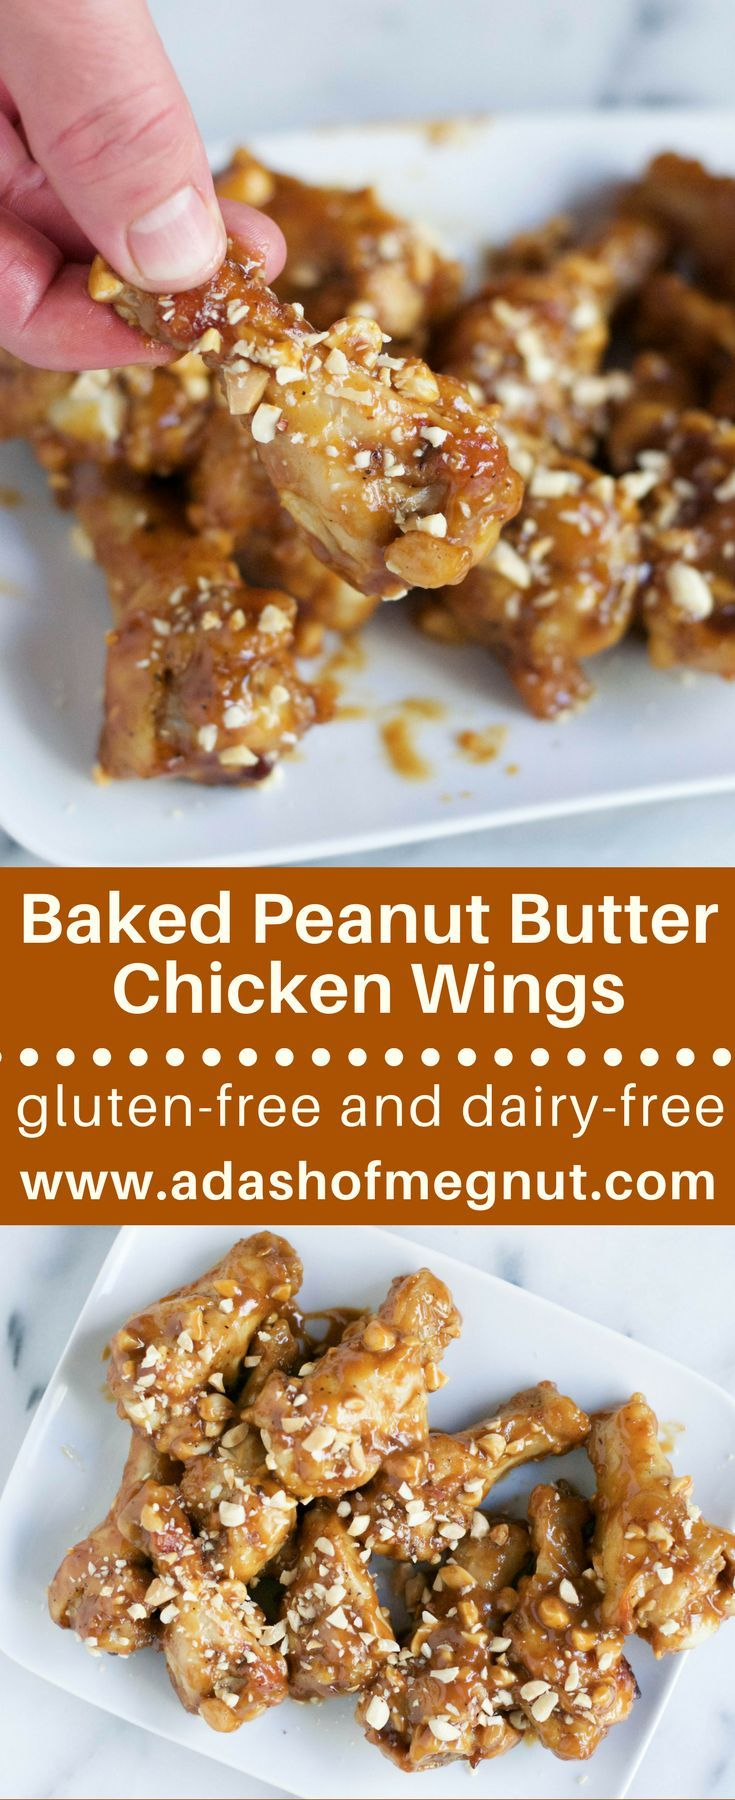 You'll love the flavor of these peanut butter chicken wings! Gluten-free tamari sauce, honey, and garlic help make peanut butter into a luscious sauce over these tender wings. They're baked (not fried!), gluten-free and oh so crispy! Look no further for the perfect game day appetizer - though you might not want to share!#glutenfree #dairyfree #entertaining #potluck  via @adashofmegnut